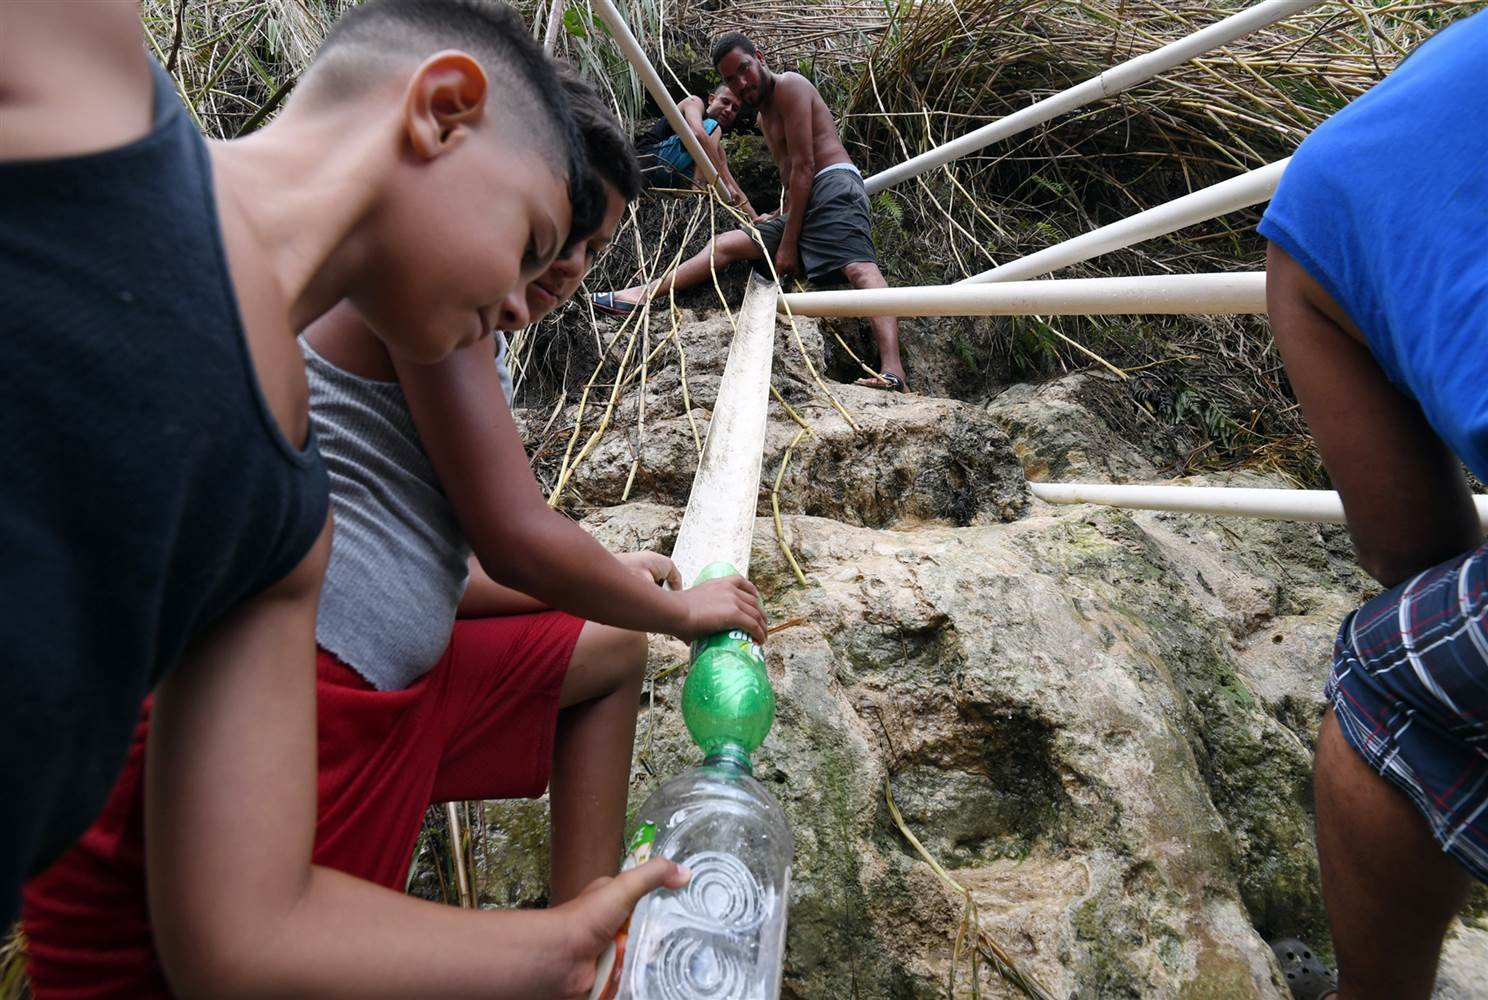 People use tubes to collect water from the mountain on September 28 in the Toa Alta and Corozal area of San Juan, Puerto Rico. (Andre Kang / GDA via AP)